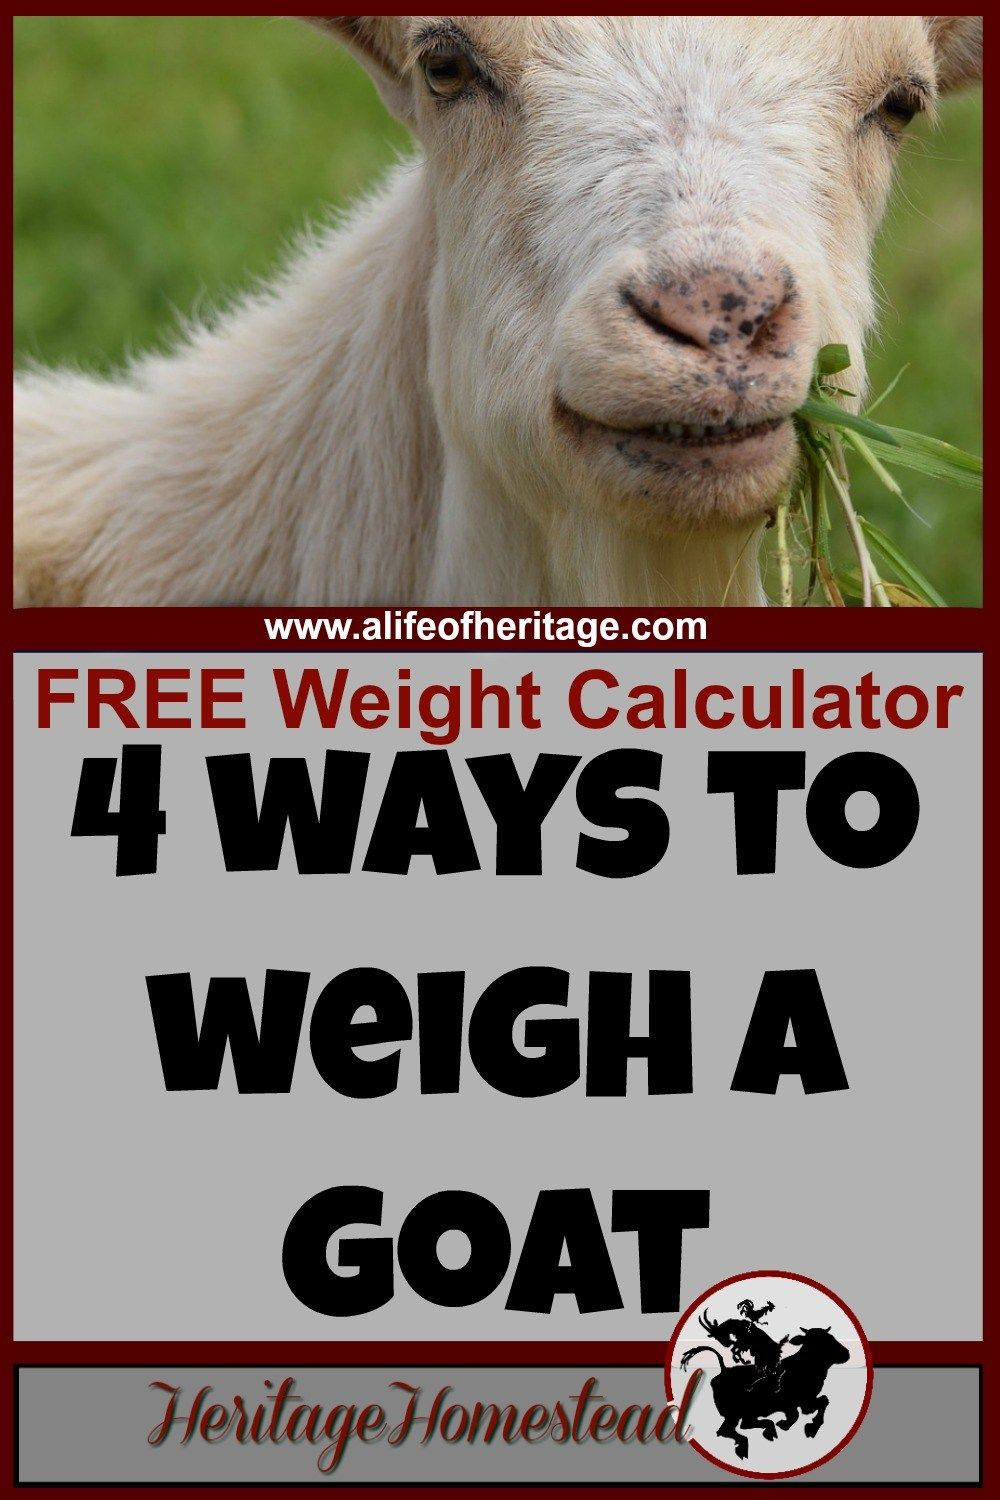 Goat Care Goat Weight Calculator How Do I Know My Goat S Weight Have You Ever Ask The Question How To Weigh My Goat Here Ar Goat Care Goats Pygmy Goat